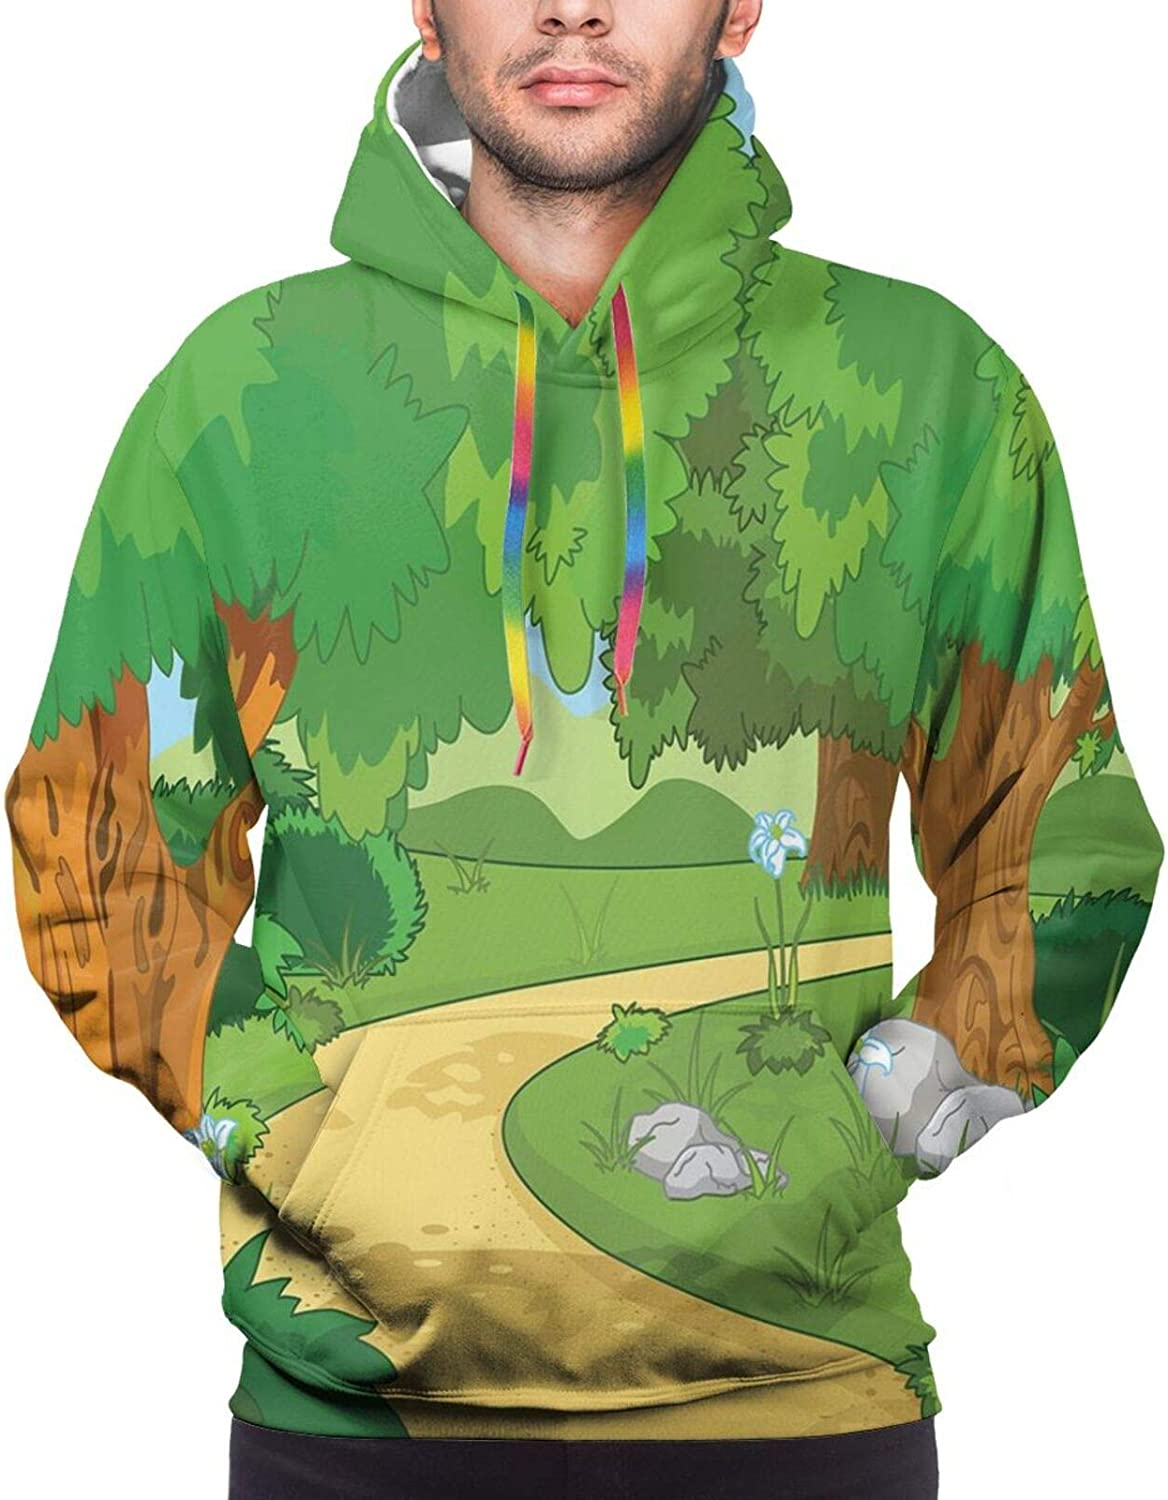 Men's Hoodies Sweatshirts,Children Baby Boy Toy Figures Pattern with Dots Number Five Cars for Joyous Play Time